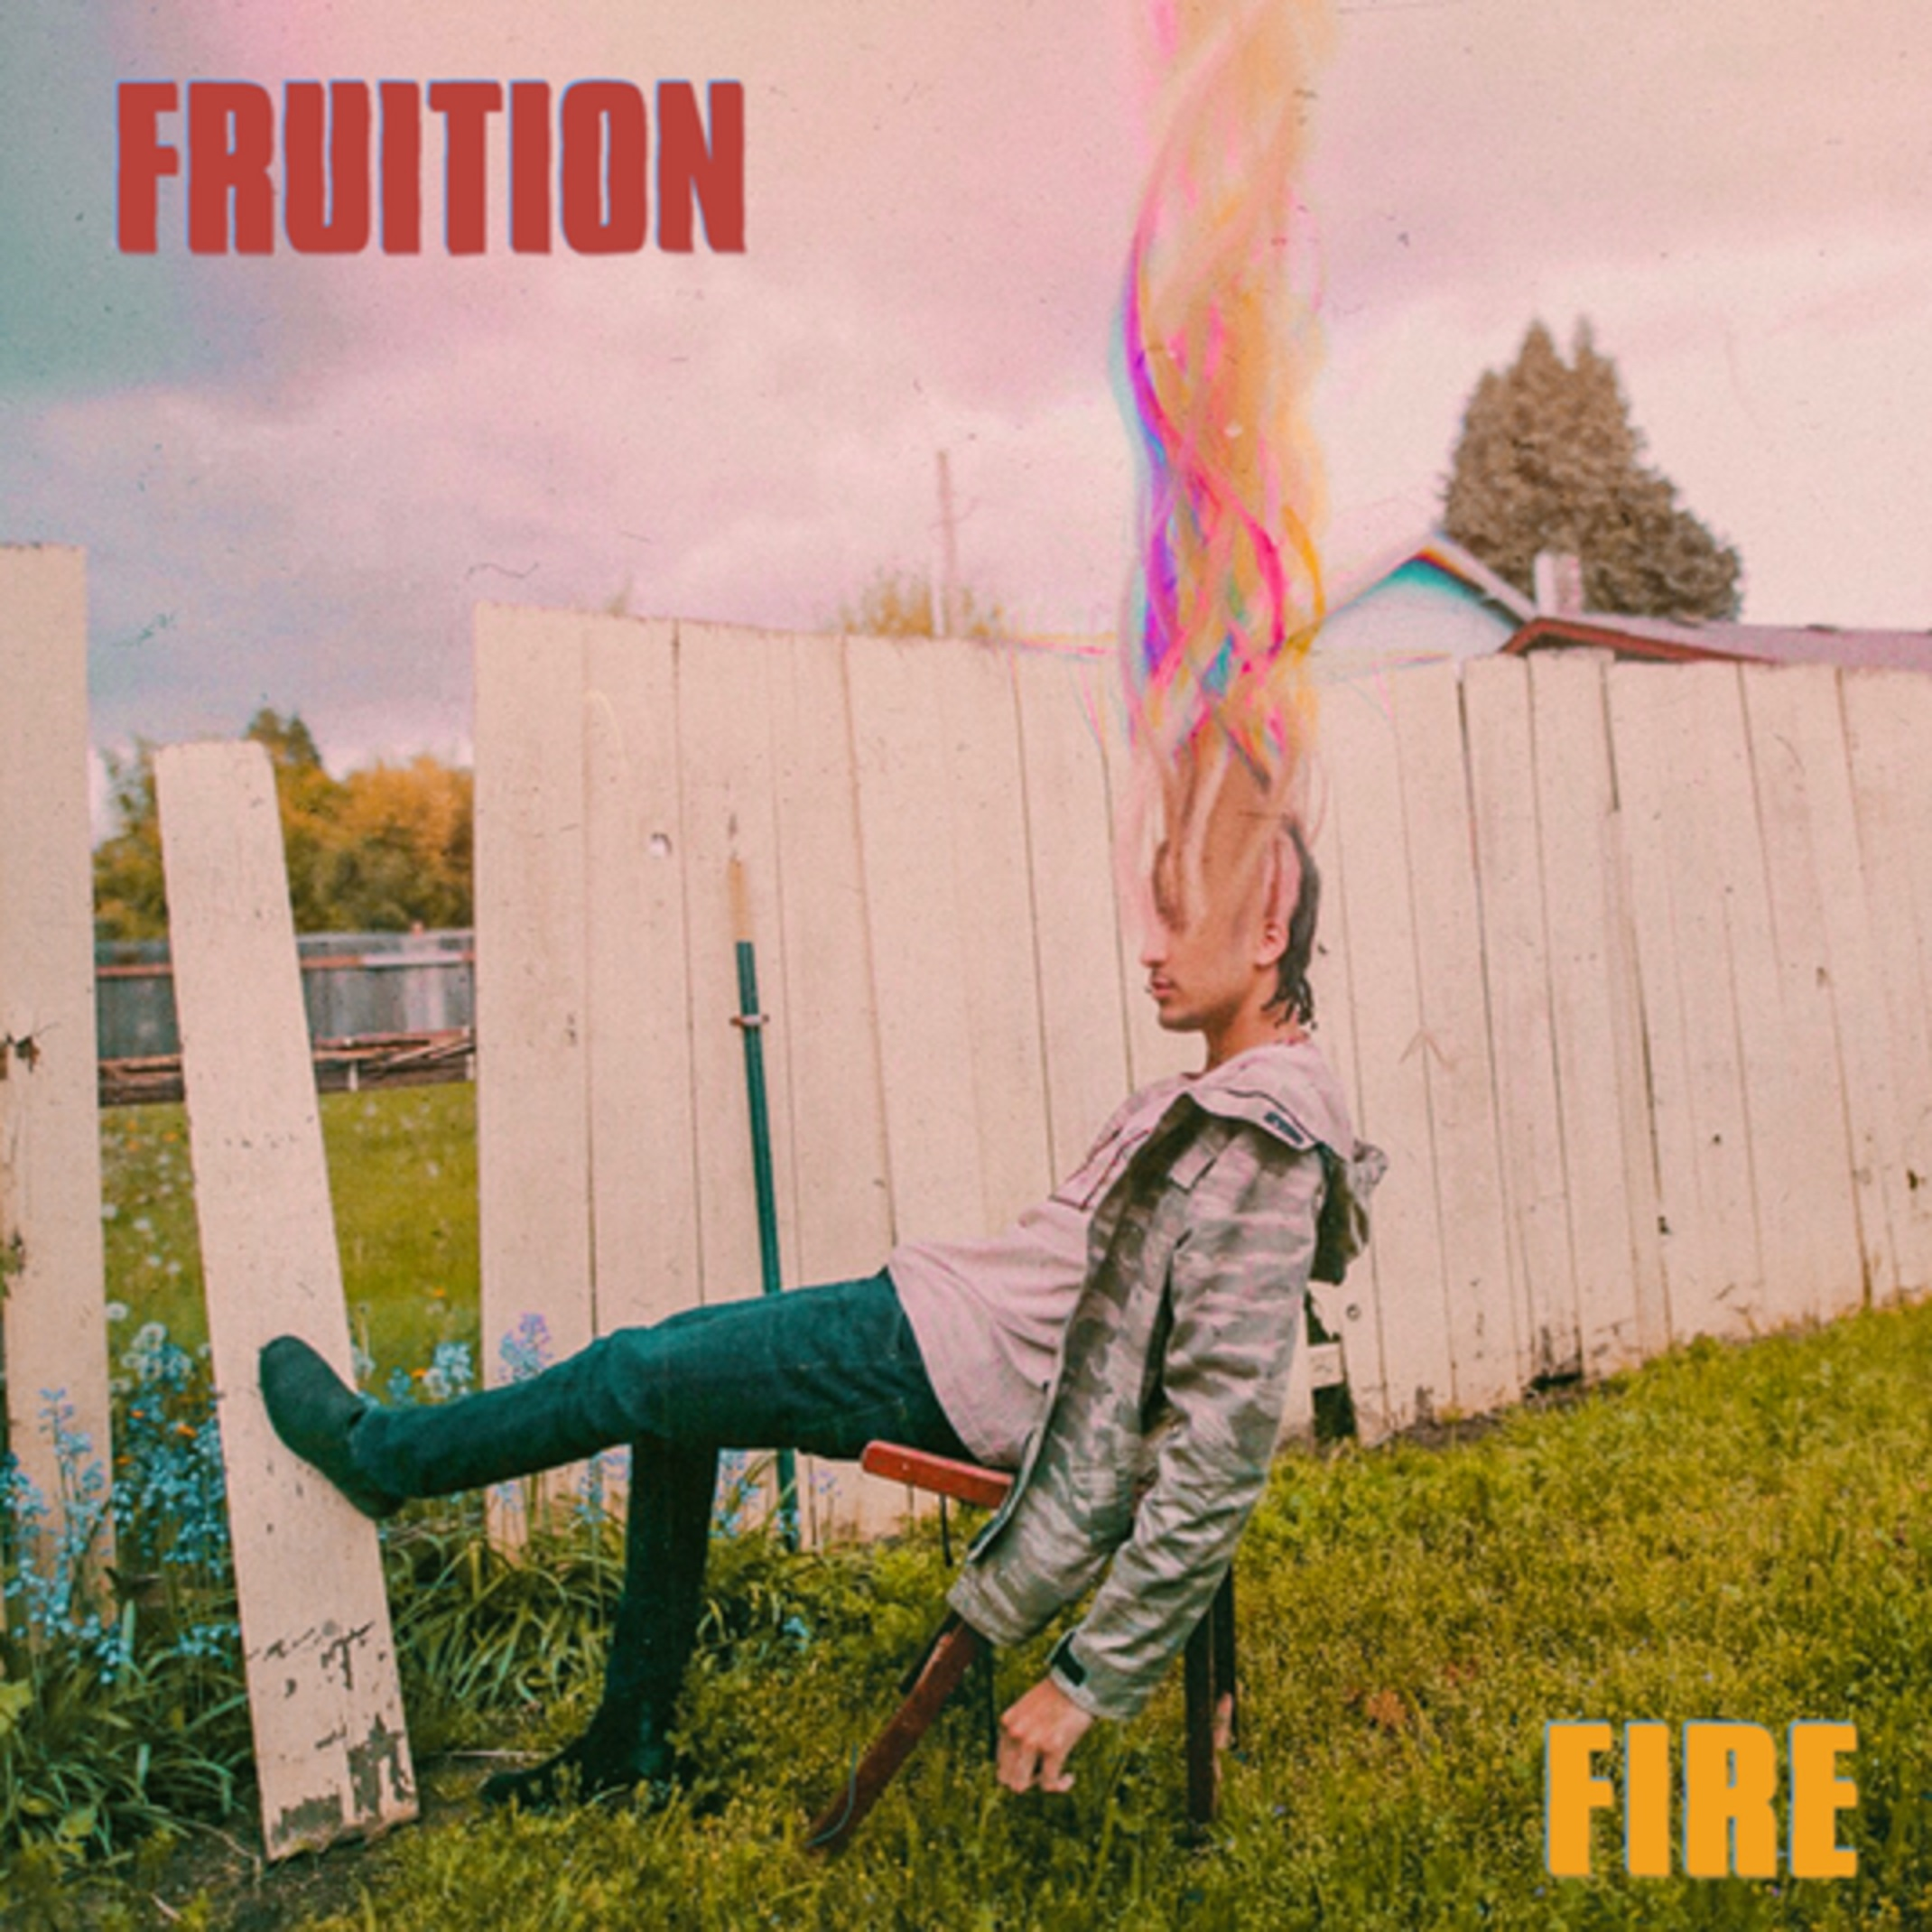 Fruition Announce New EP 'Fire'